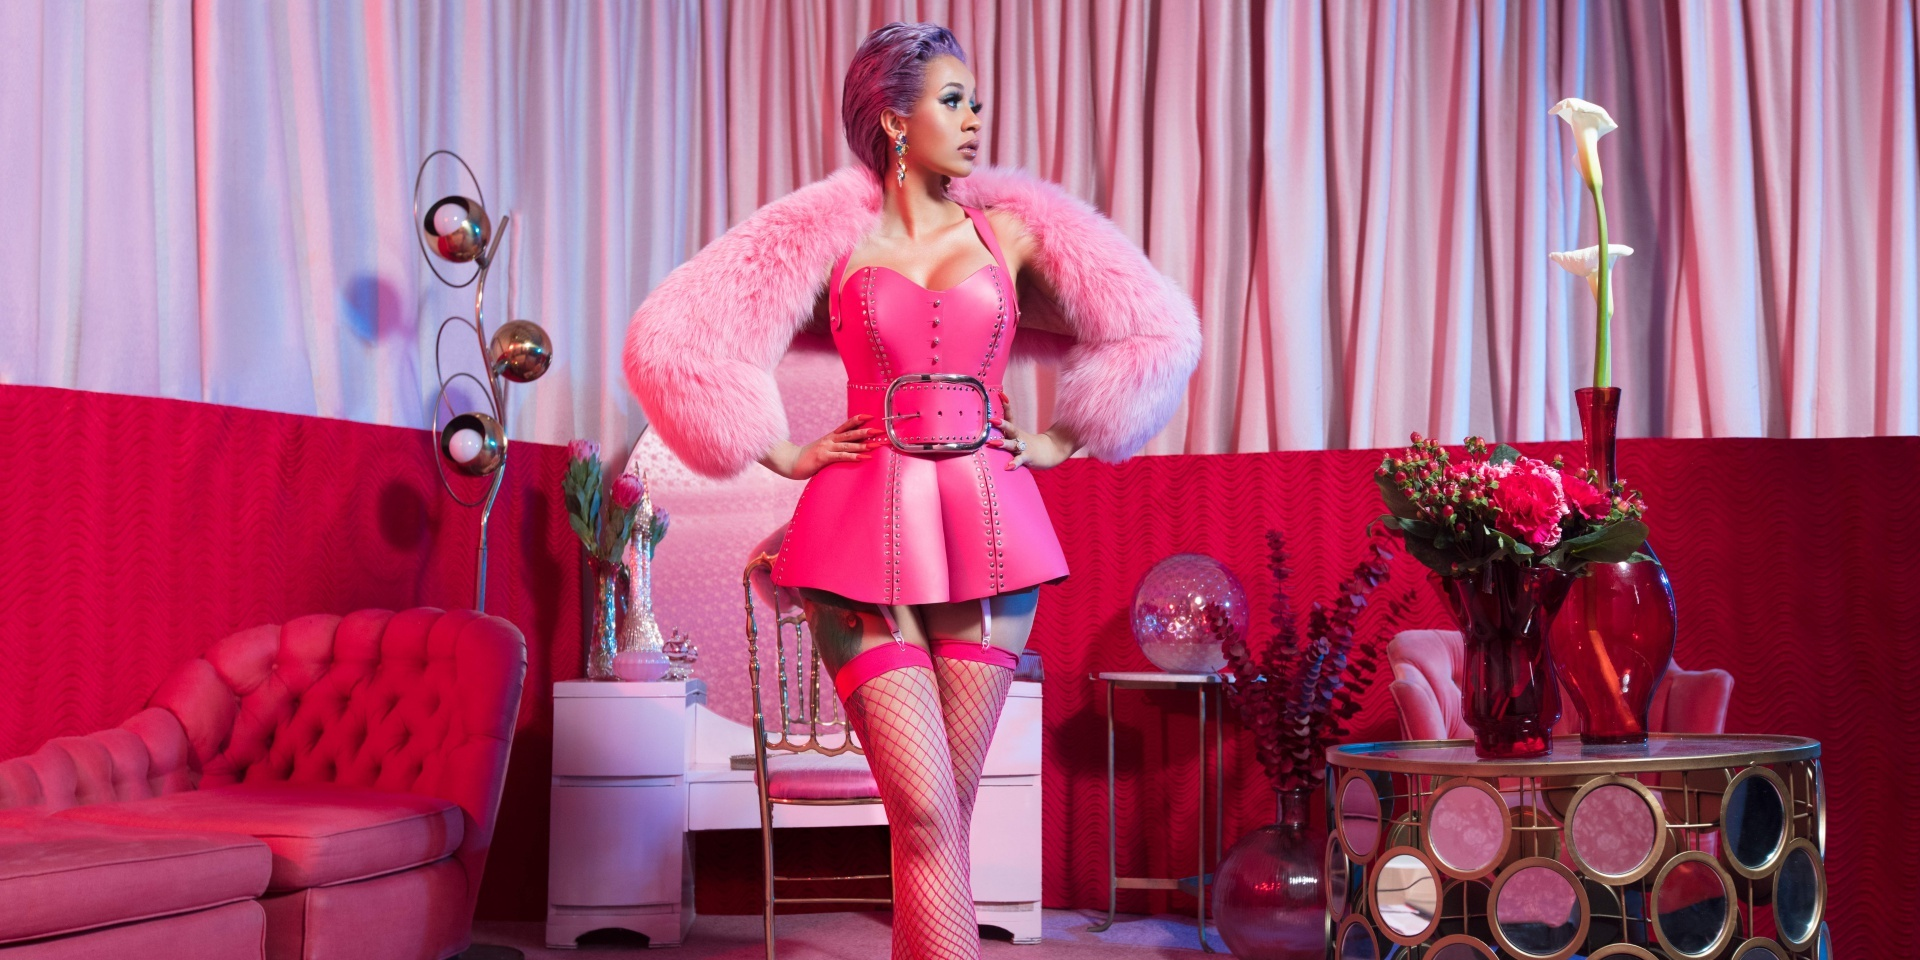 Cardi B to star in new film alongside Jennifer Lopez and Constance Wu